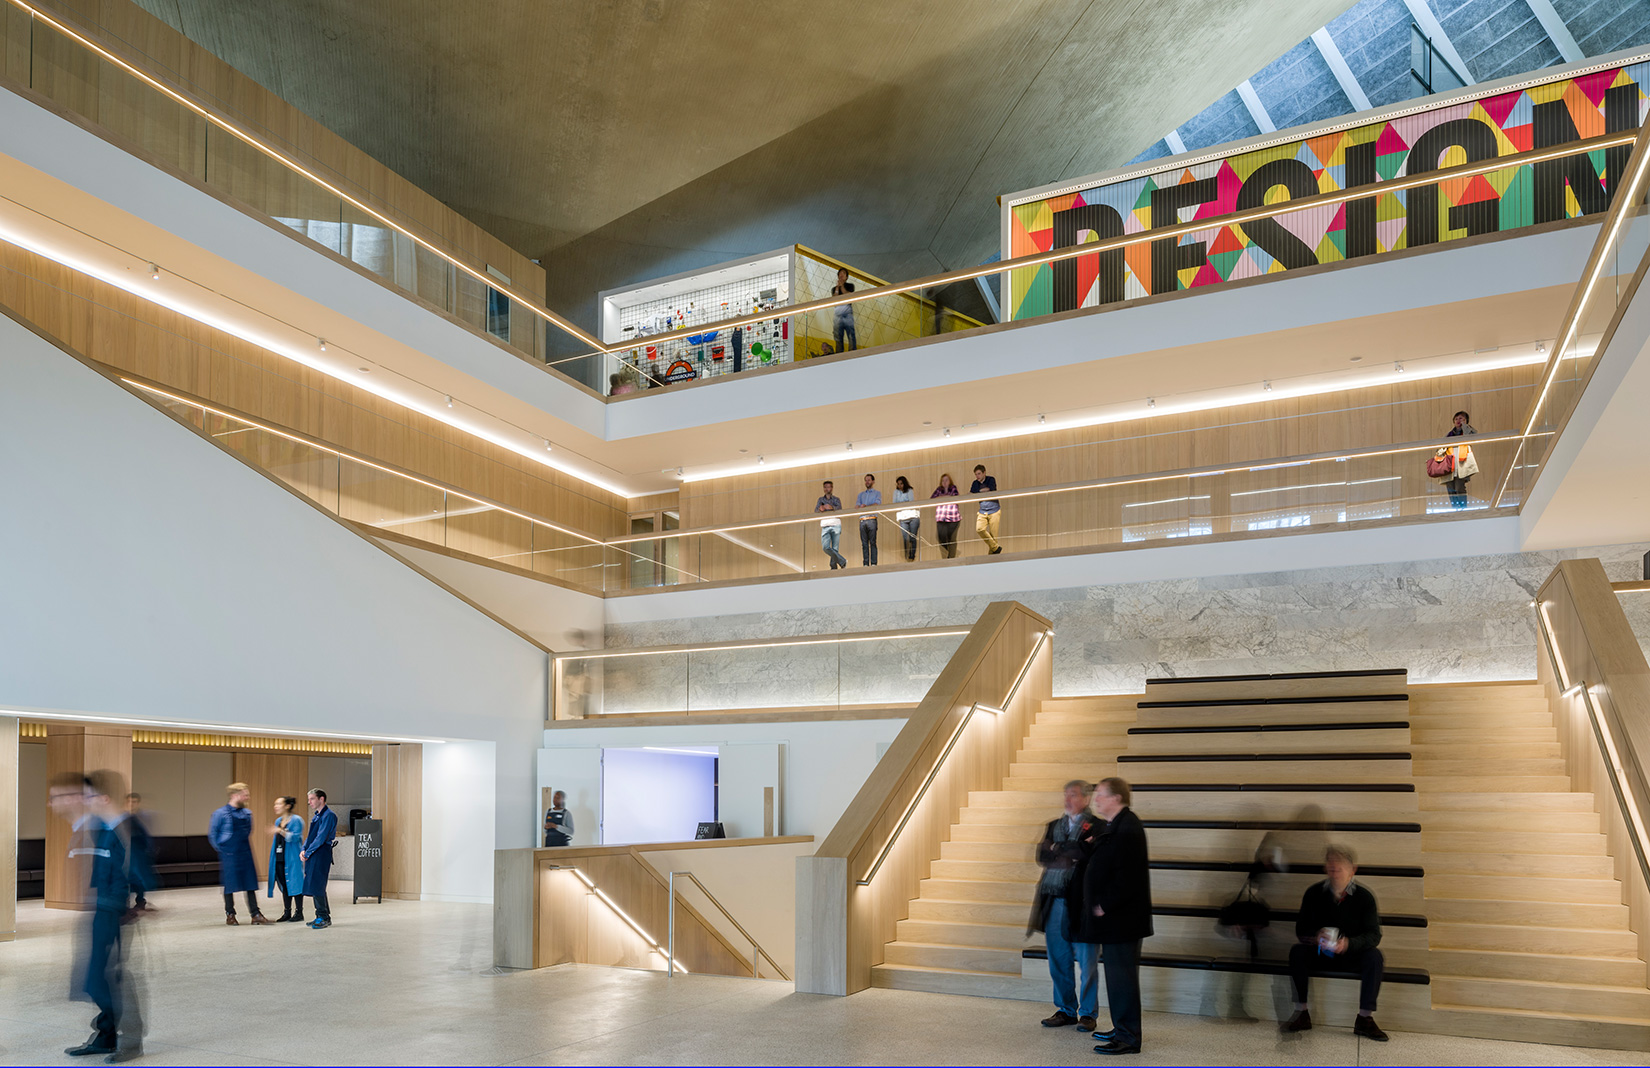 Architecture Design London design museum review: does its architecture match its ambitions